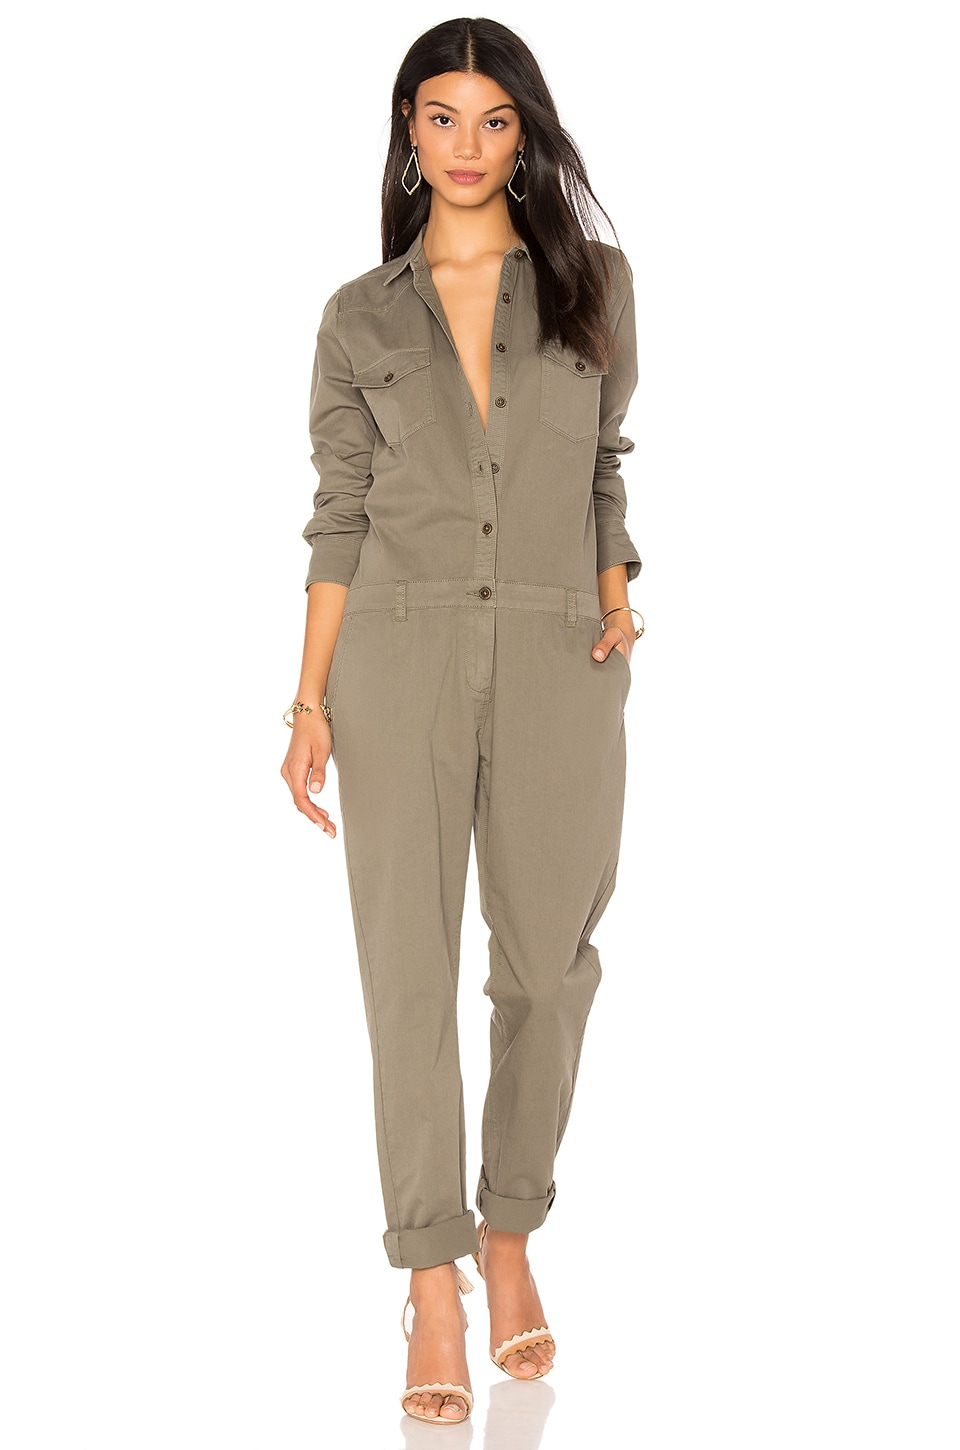 MKT studio Orali Jumpsuit in Olive